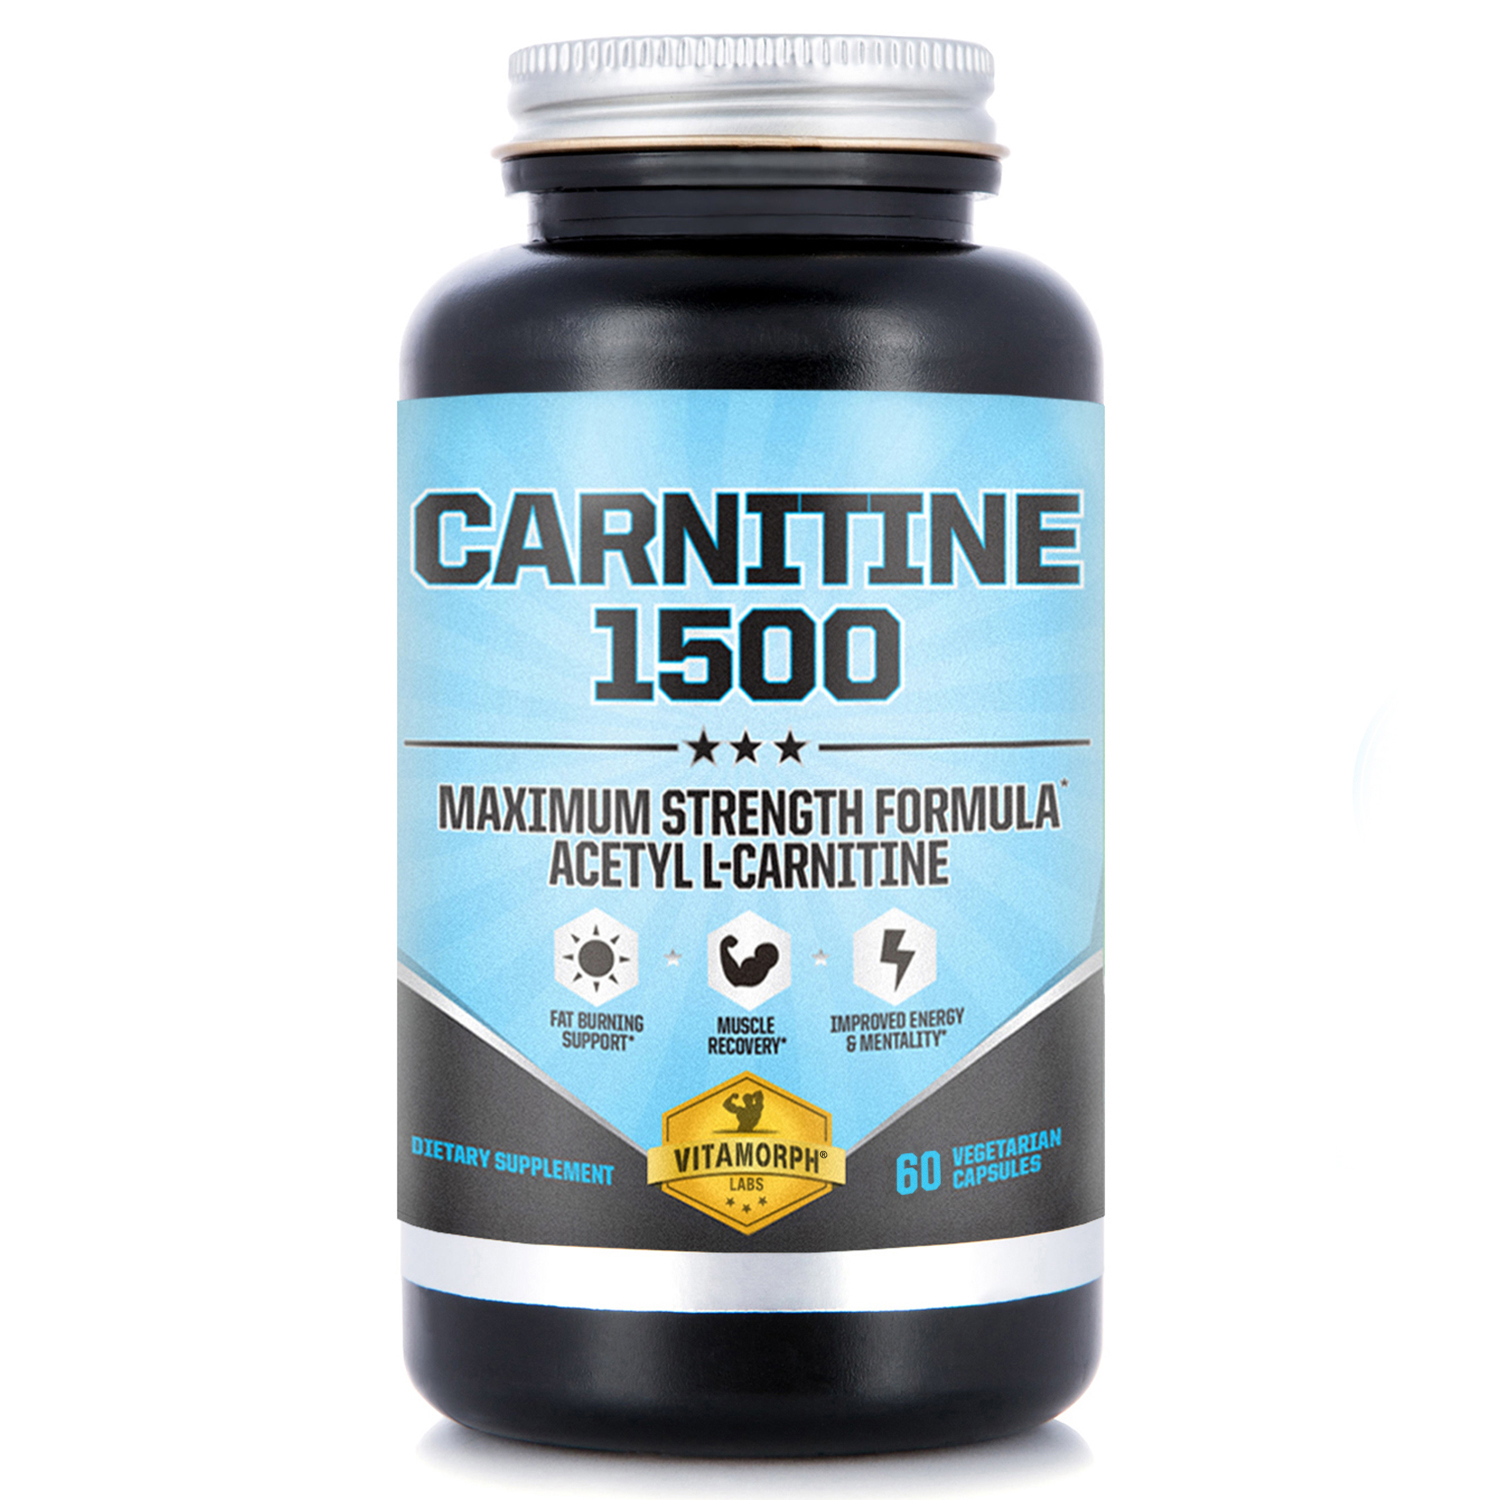 Acetyl L-Carnitine HCl capsules 1500mg Per Serving | Maximum Potency Acetyl L-Carnitine Supplement for Mentality, Energy, Fat Metabolization & Weight Loss | 60 Vegetarian Capsules